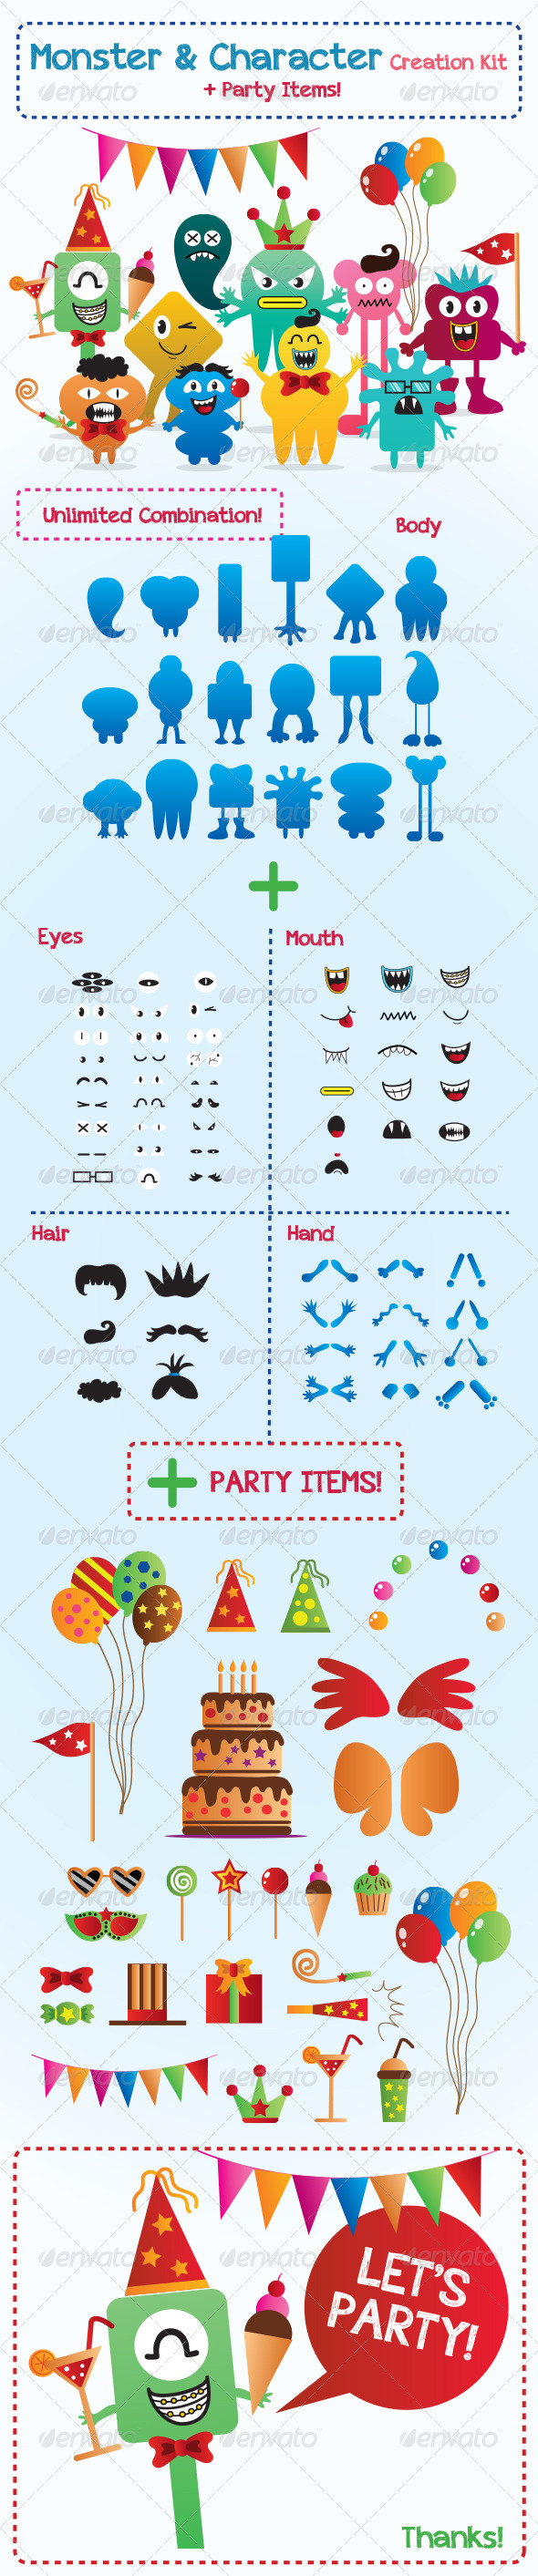 Monster and Character Creation Kit with Party Items - Monsters Characters